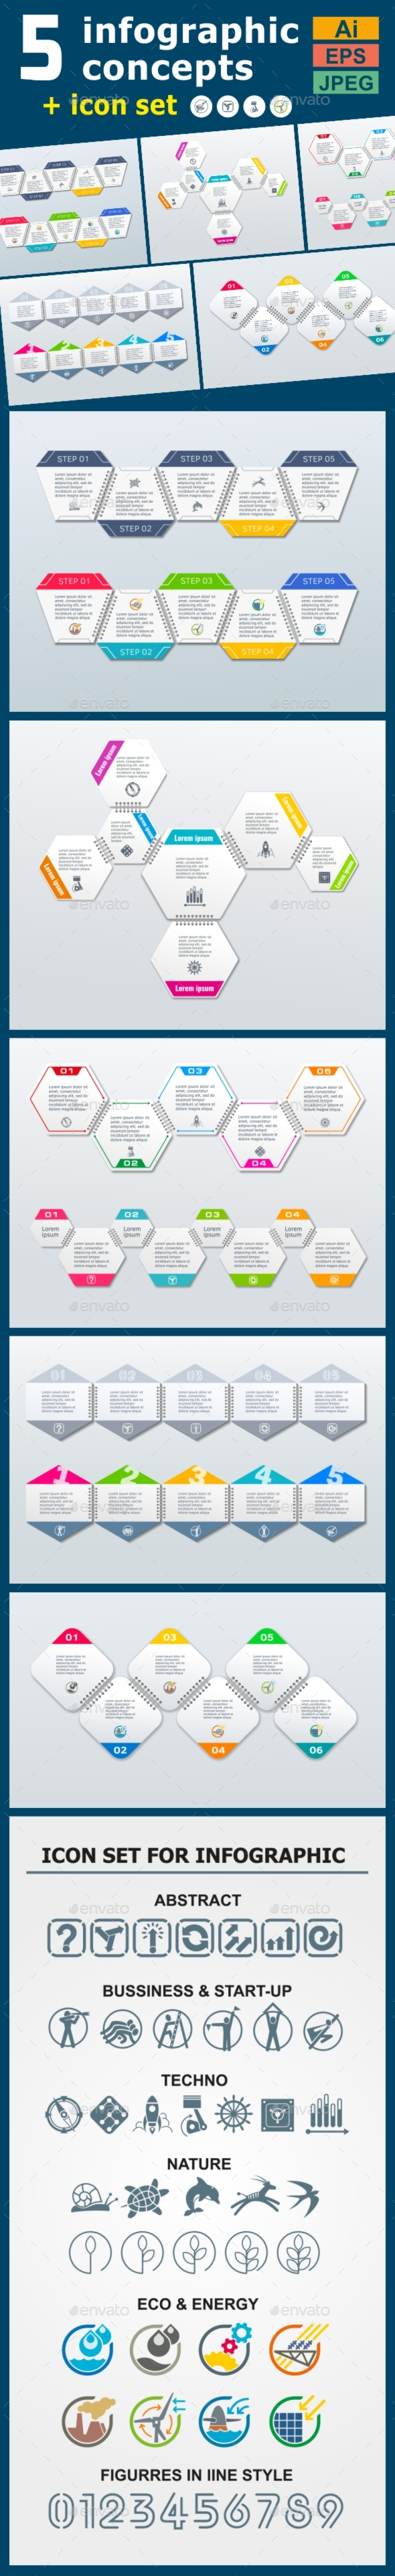 Infographic Templates in Paper Style. v.04 - Infographics